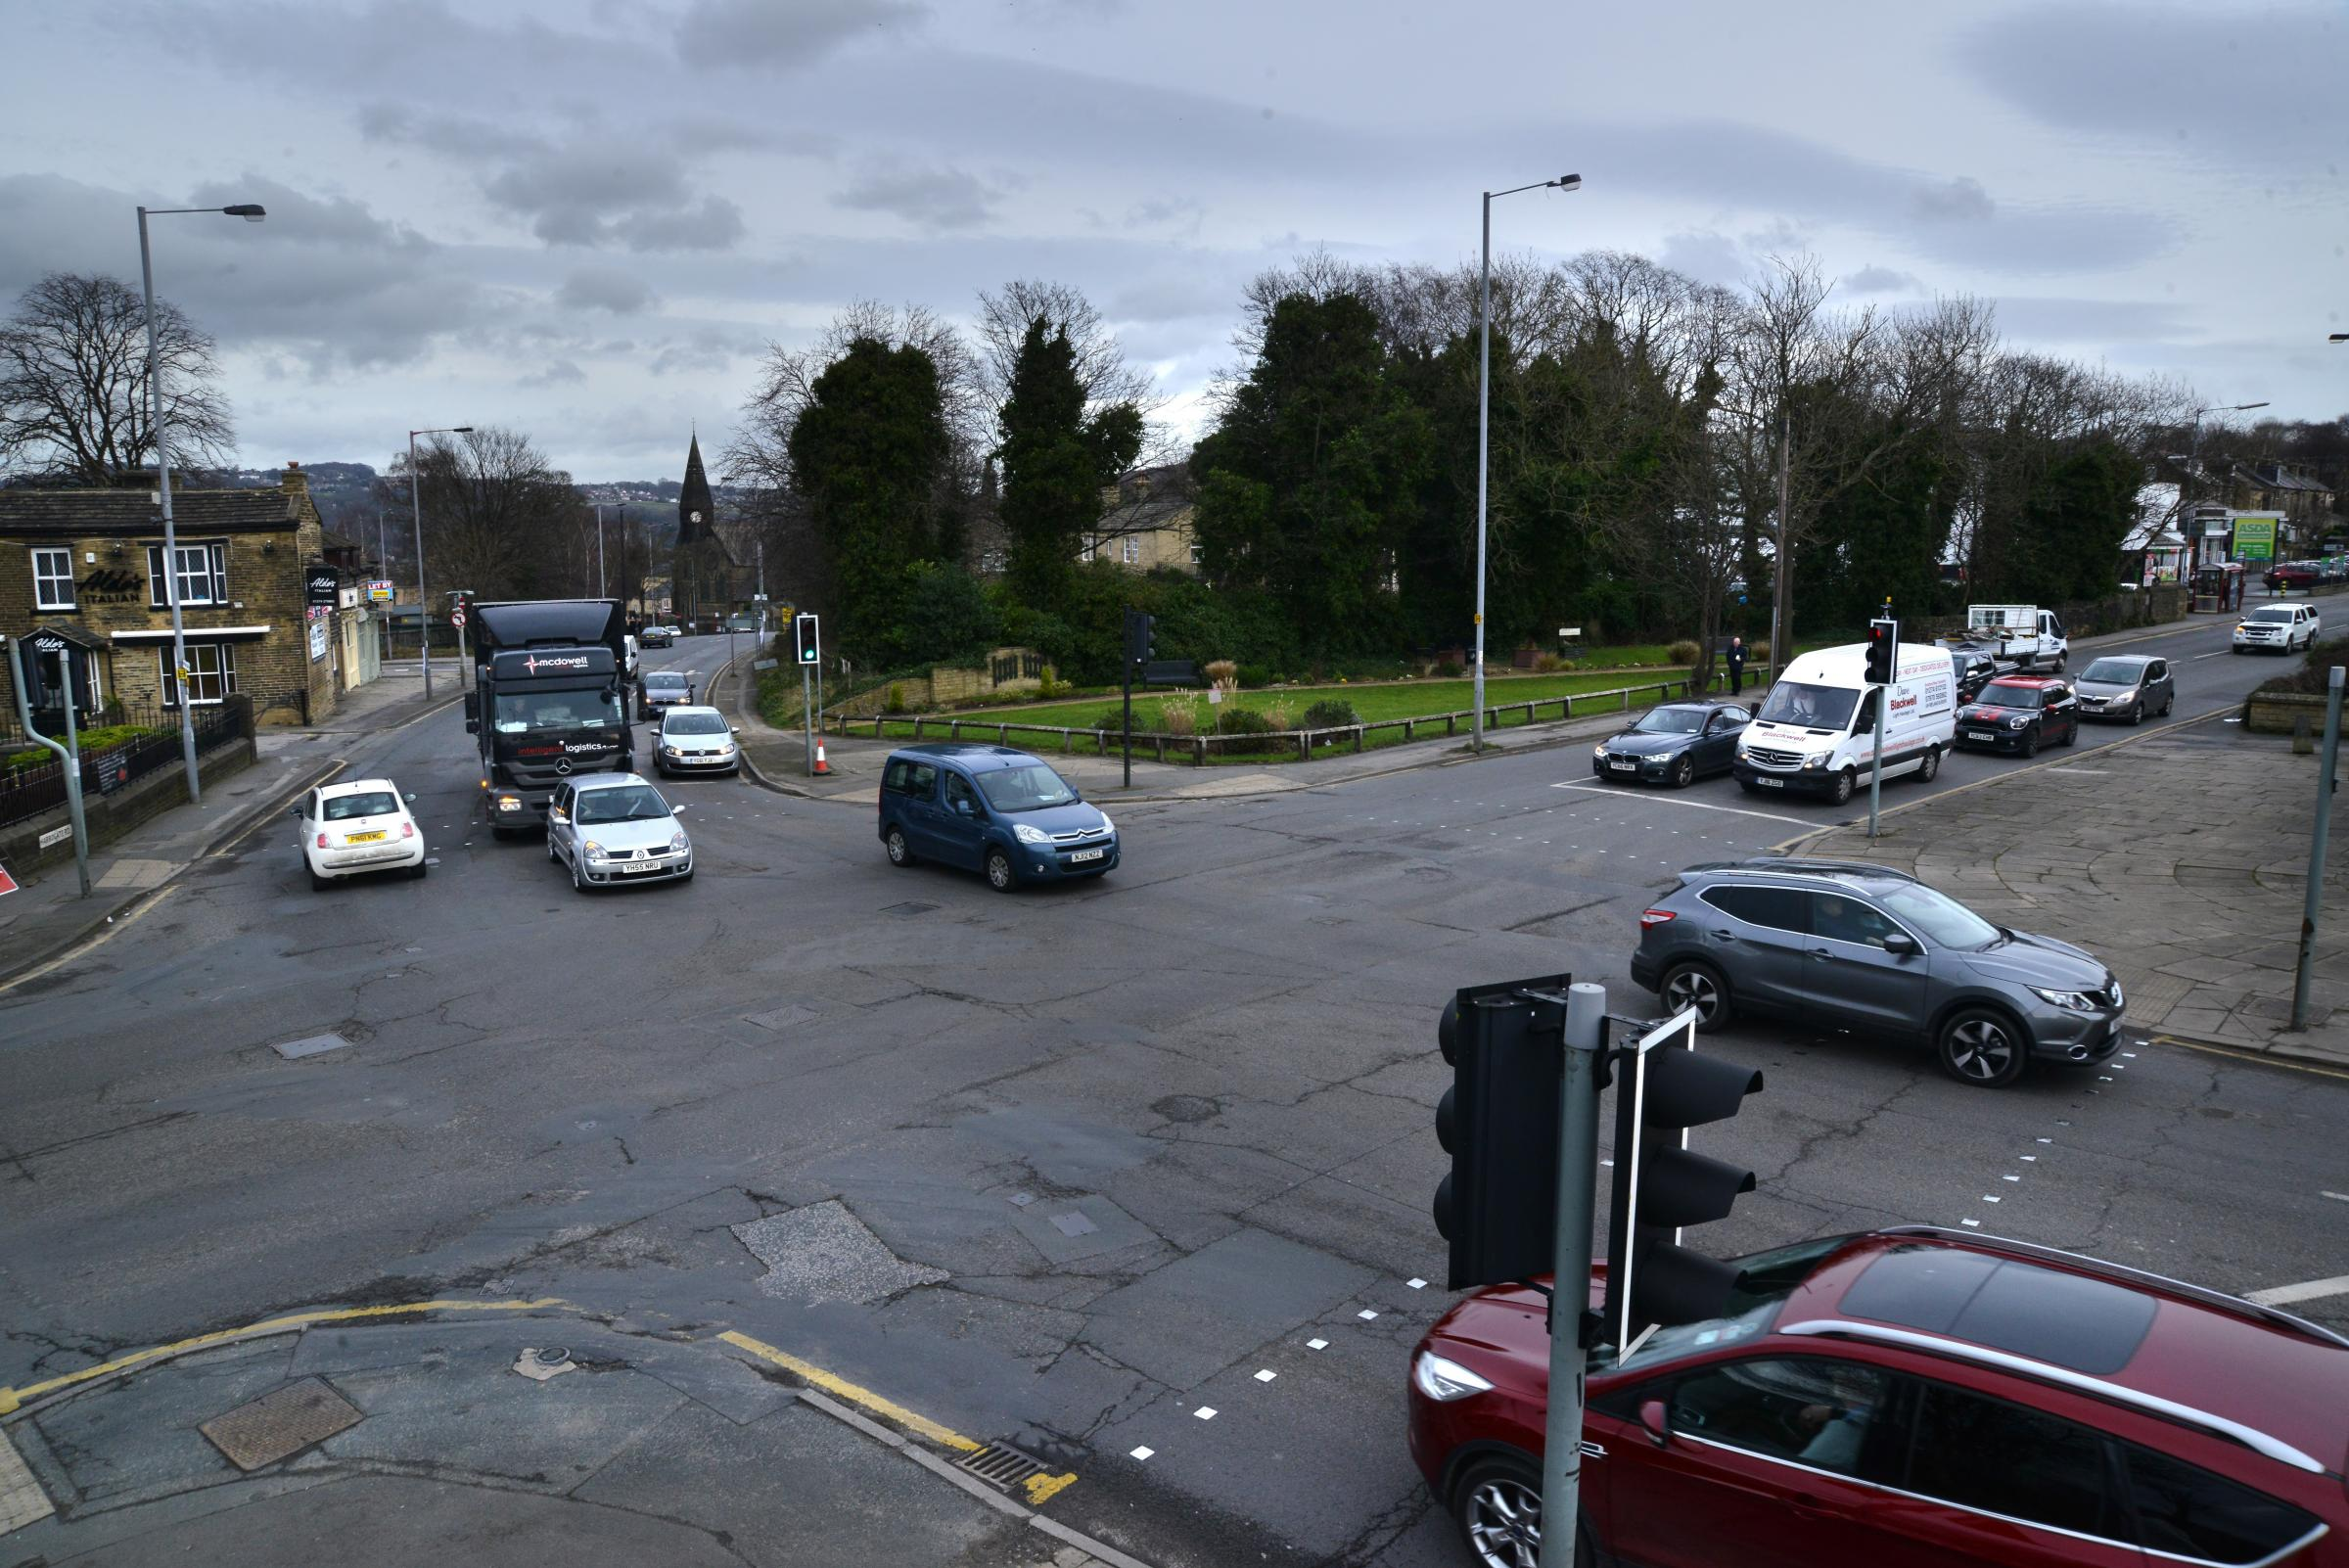 The Harrogate Road/New Line junction in Greengates